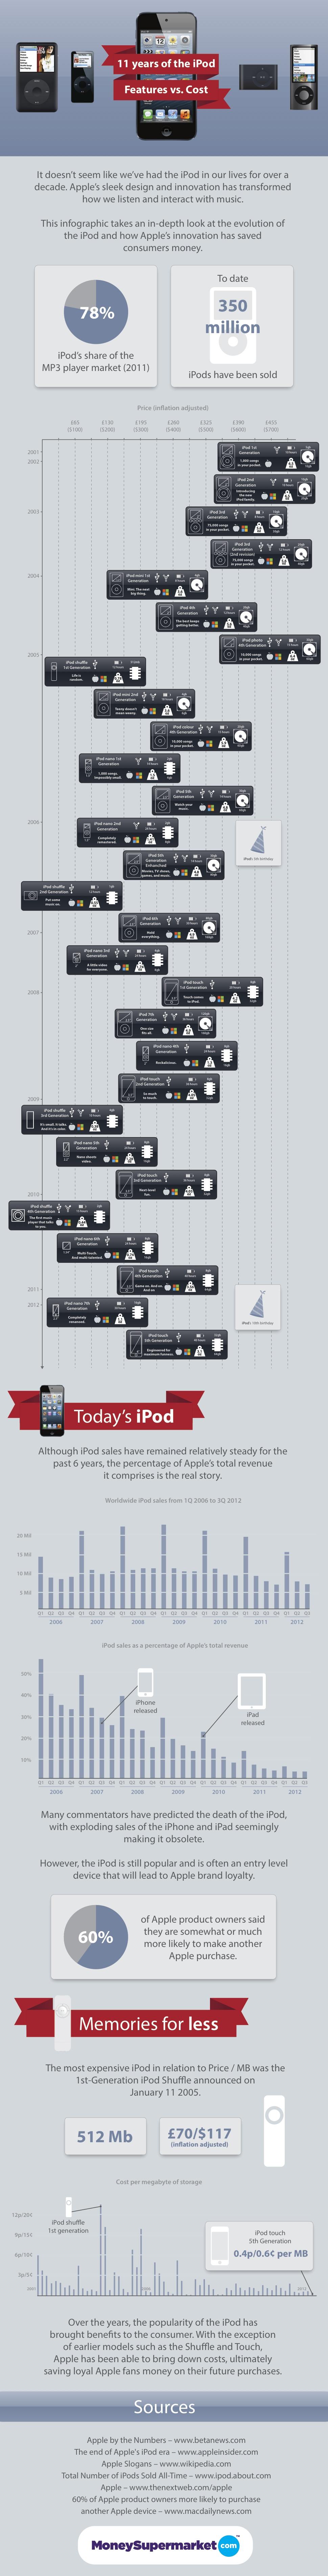 Infographic: The History Of The iPod - Eleven Years of Features and Cost